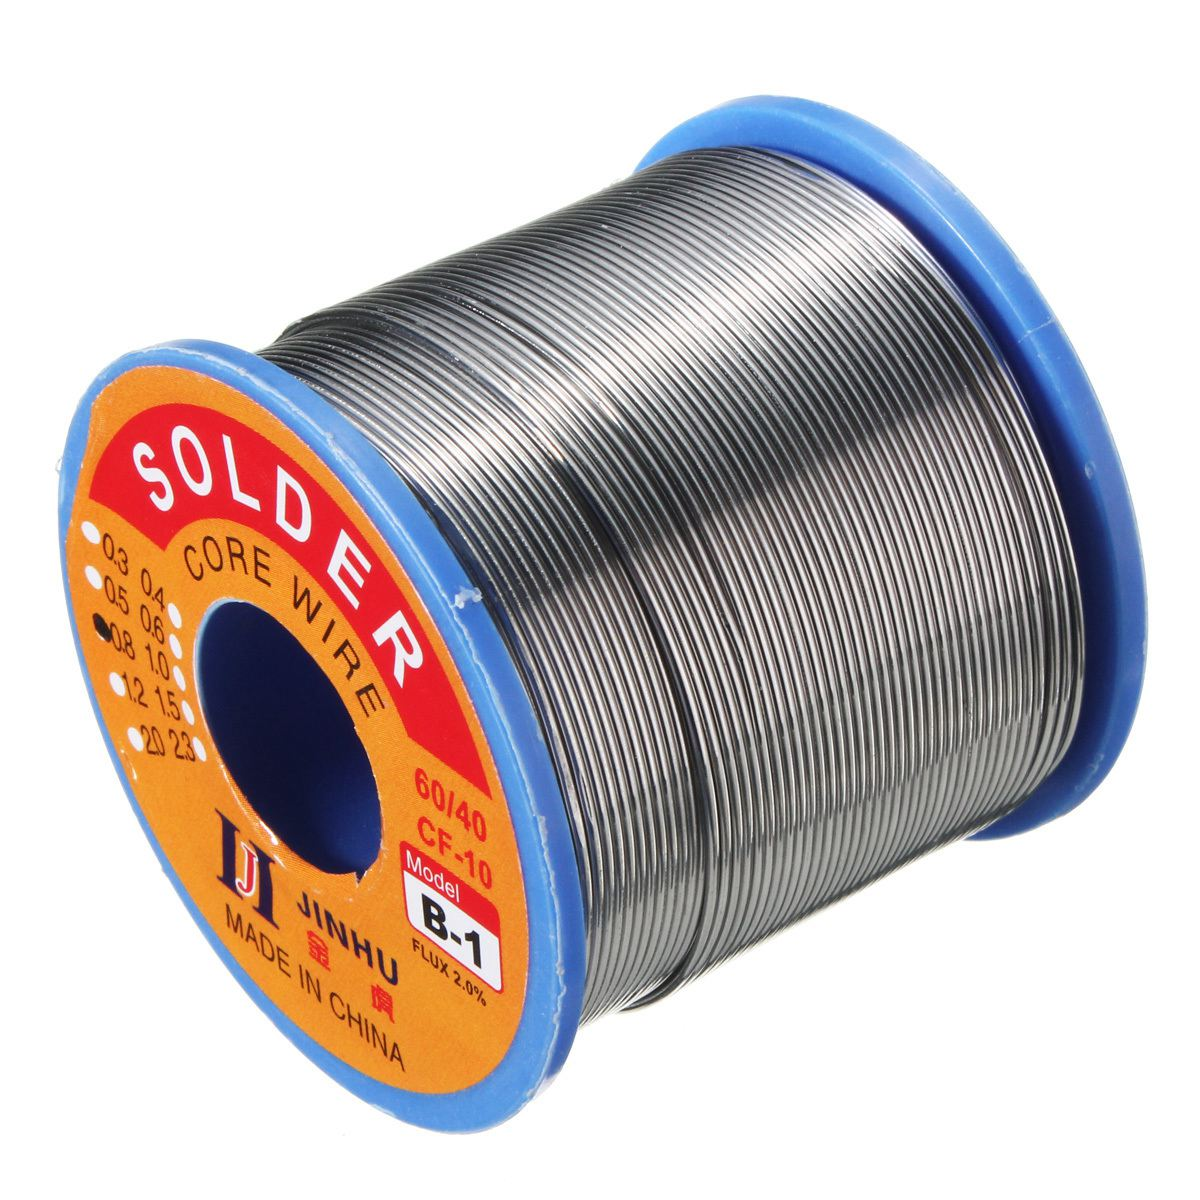 0.5/0.7/1MM 60/40 FLUX 2.0% 500g Tin Lead Solder Wire Melt Rosin Core Solder Soldering Wire Roll